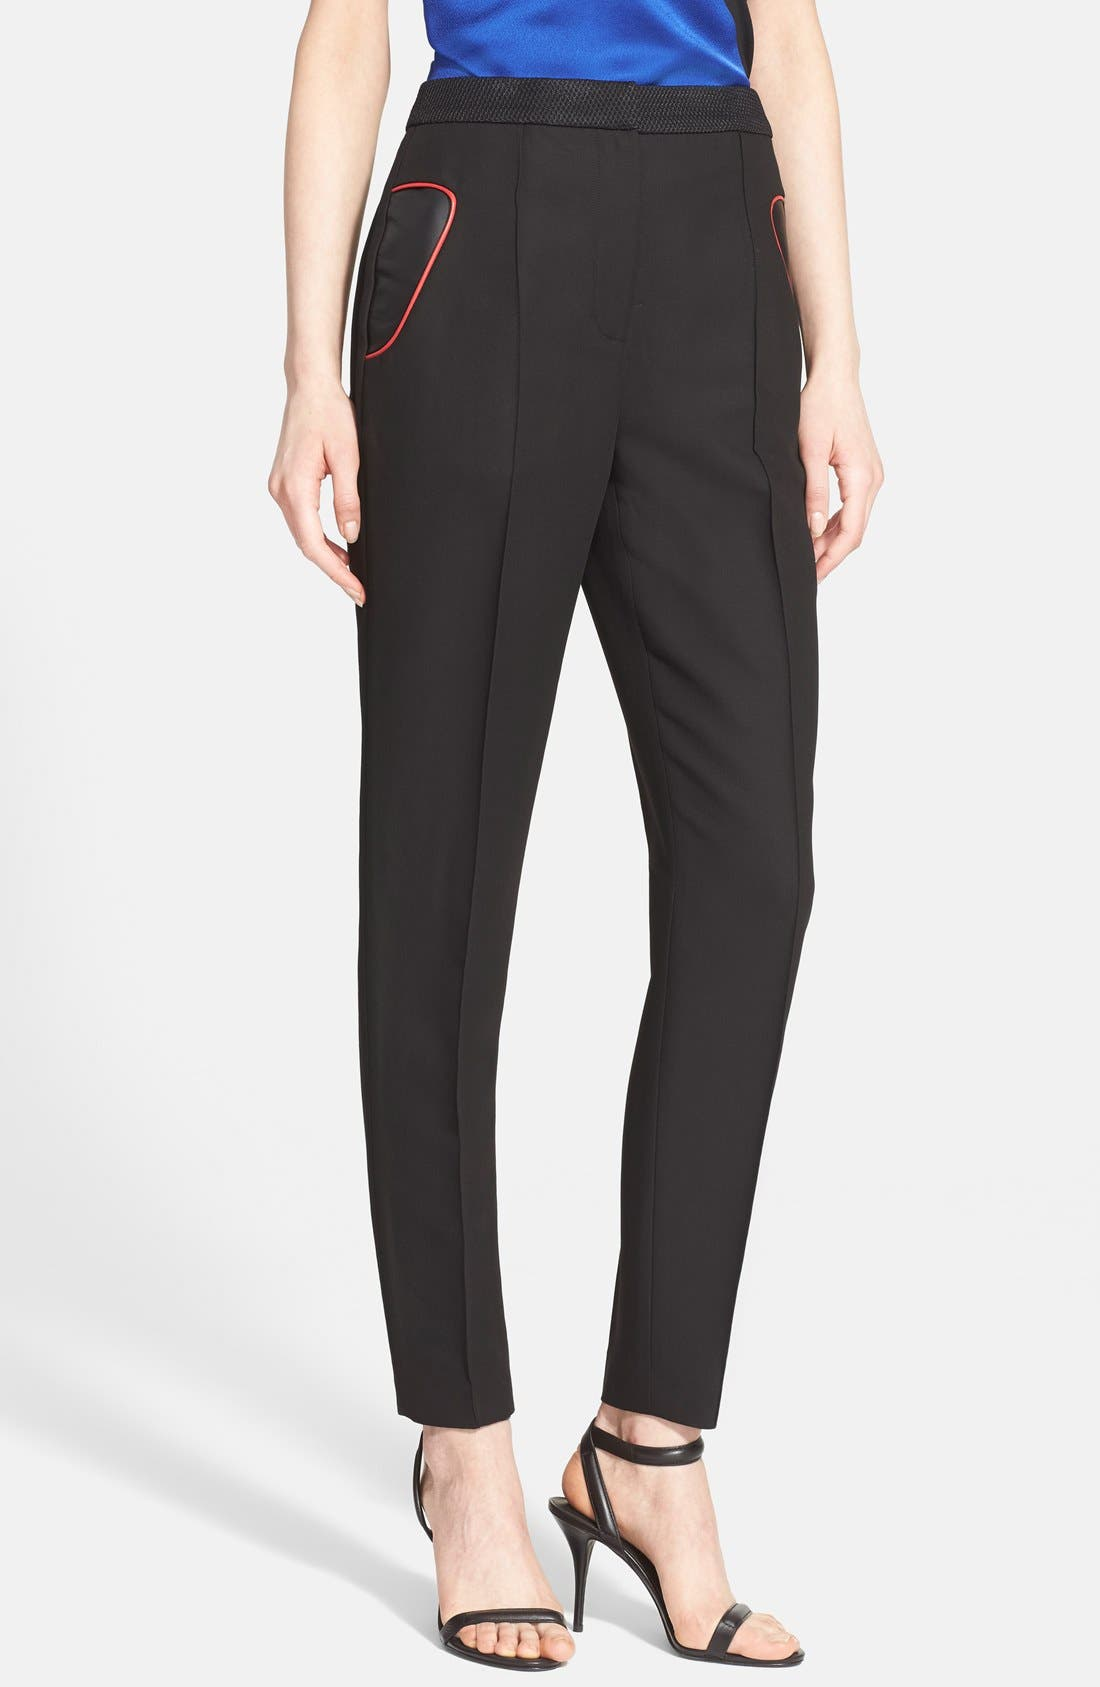 Main Image - Alexander Wang High Waist Tailored Pants with Leather Detail